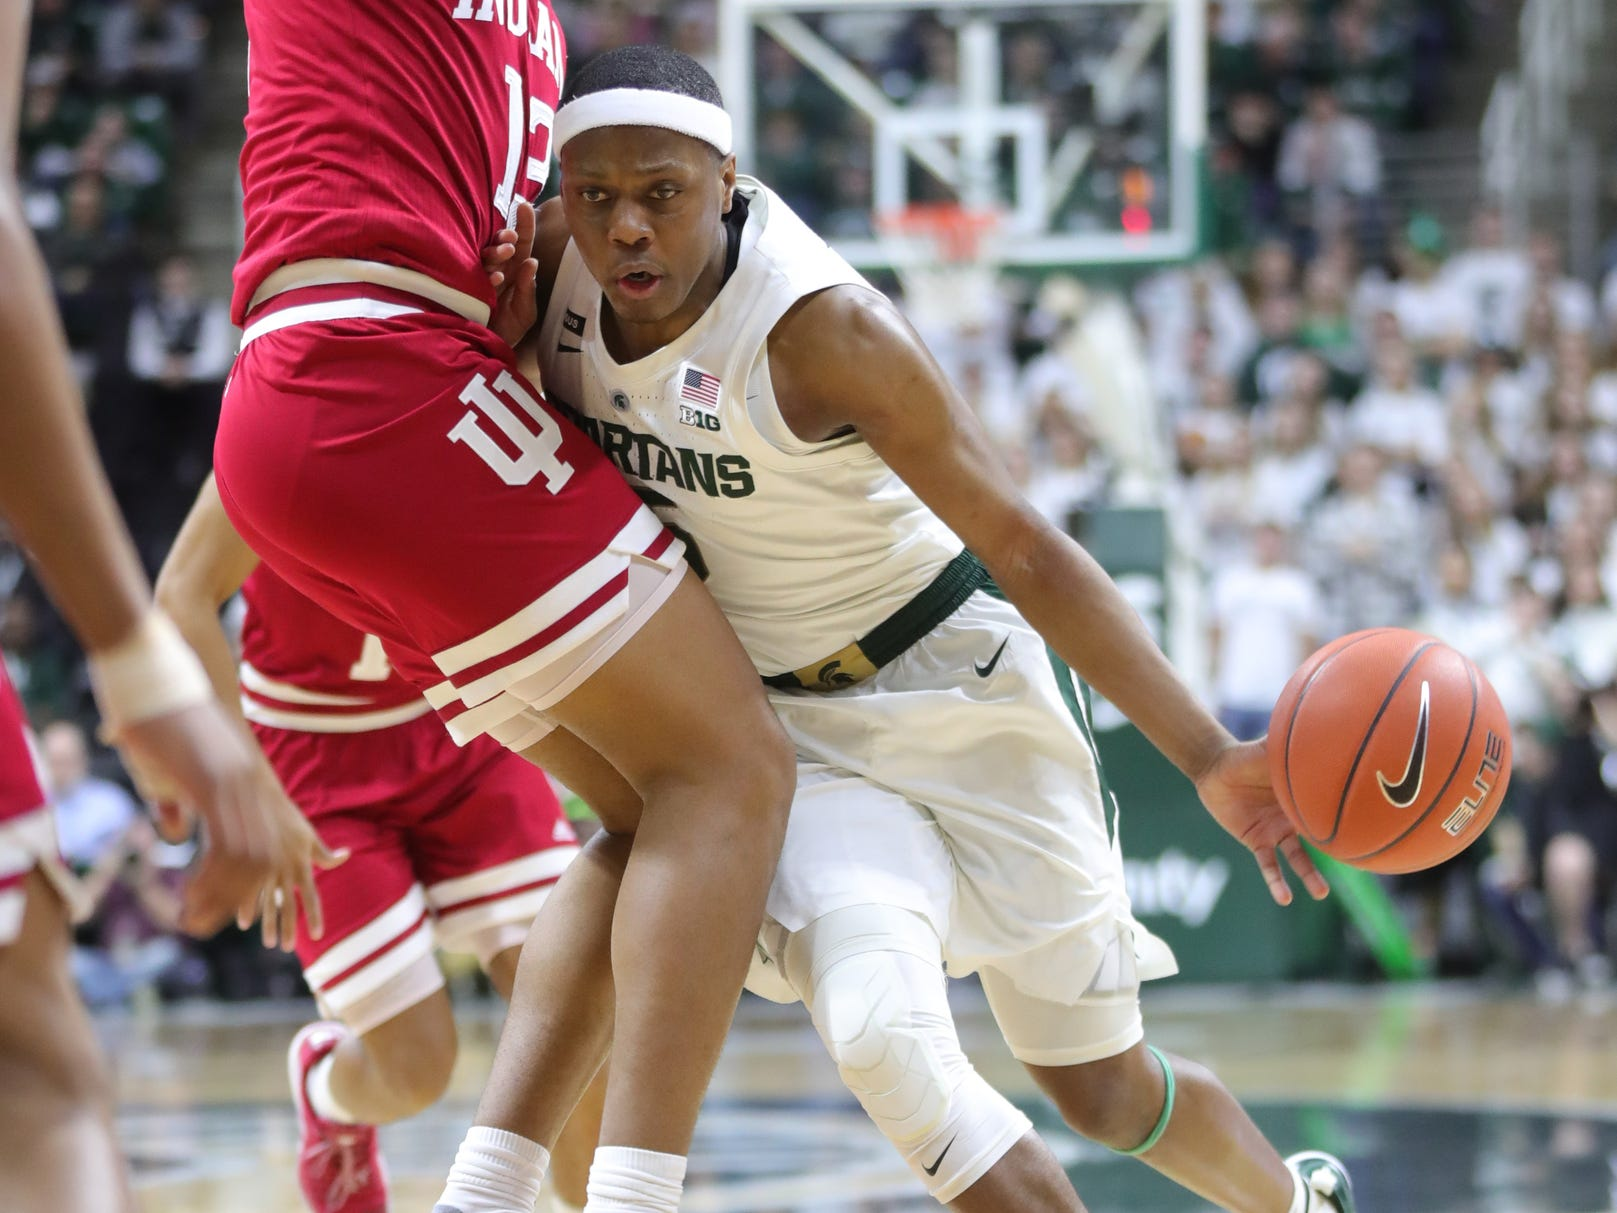 Michigan State guard Cassius Winston drives against Indiana forward Juwan Morgan during the first half of the 79-75 overtime loss to Indiana on Saturday, Feb. 2, 2019, in East Lansing.